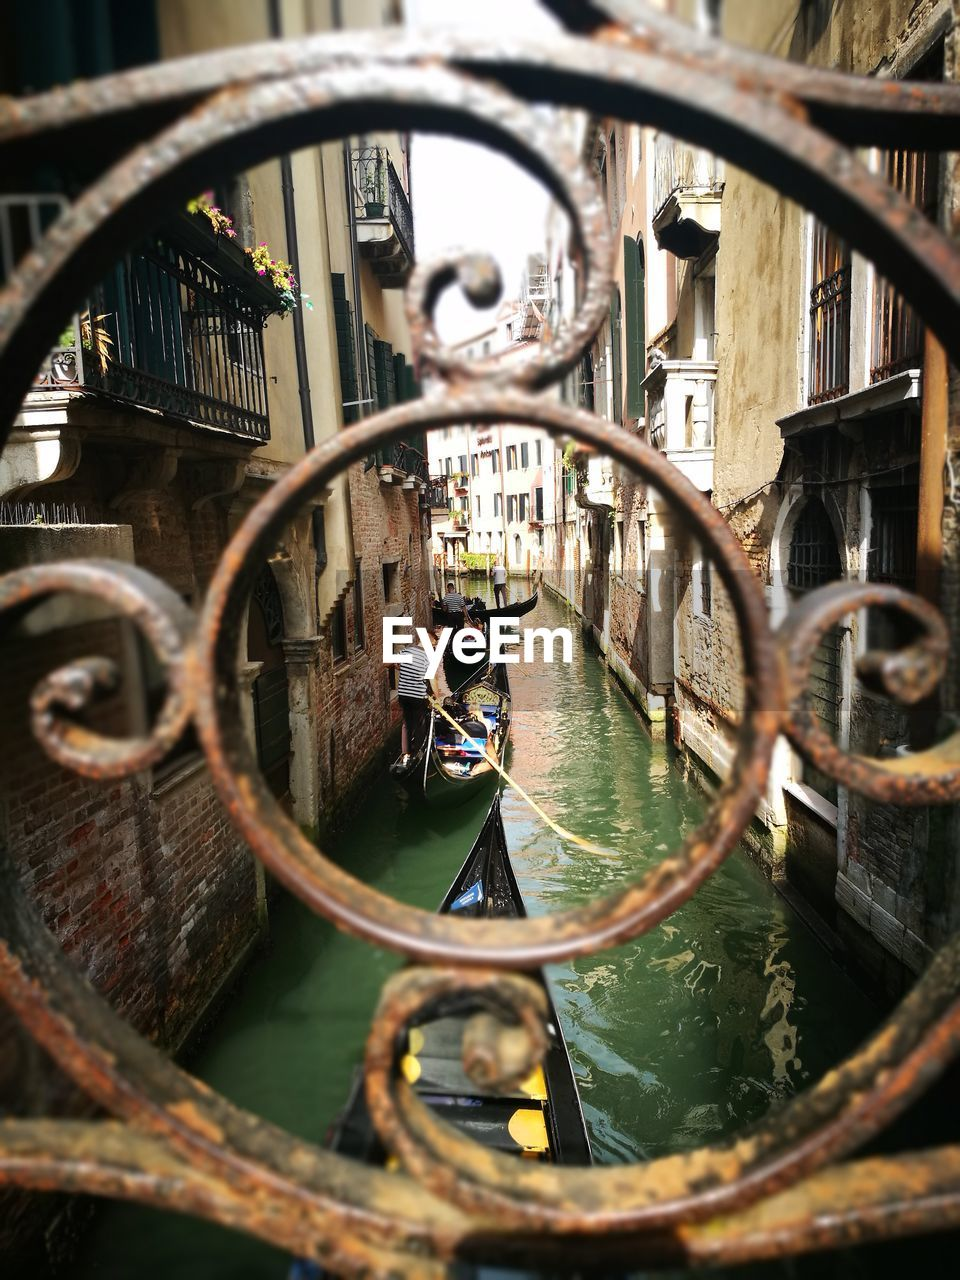 Man Standing On Gondola Sailing On Canal Amidst Buildings Seen Through Wrought Iron